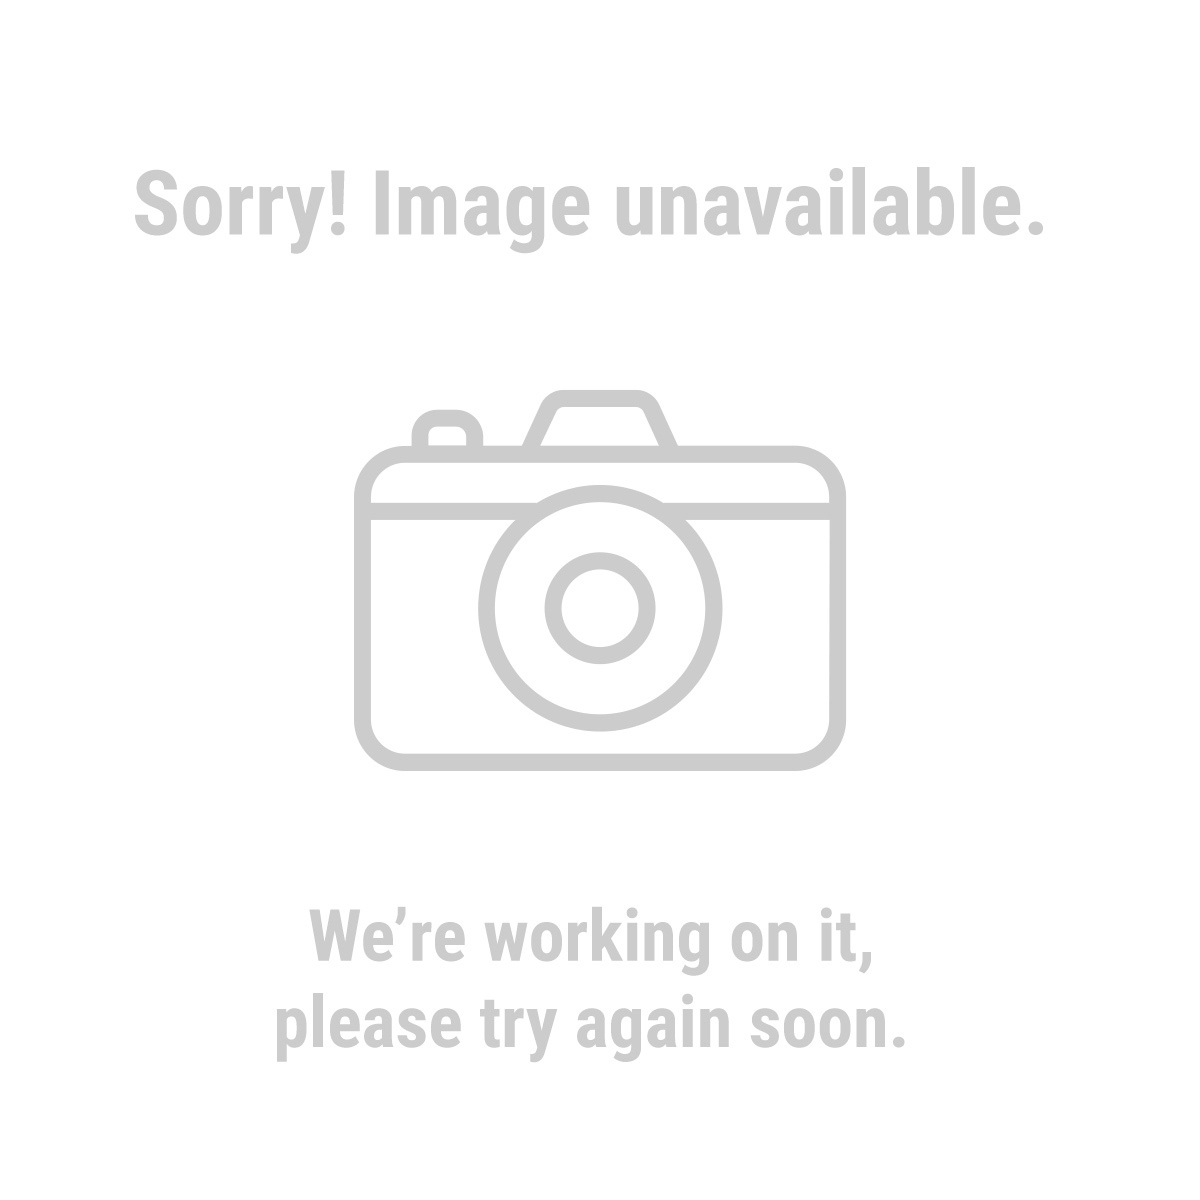 Review of the $79 Harbor Freight Generator (with pics) 56k